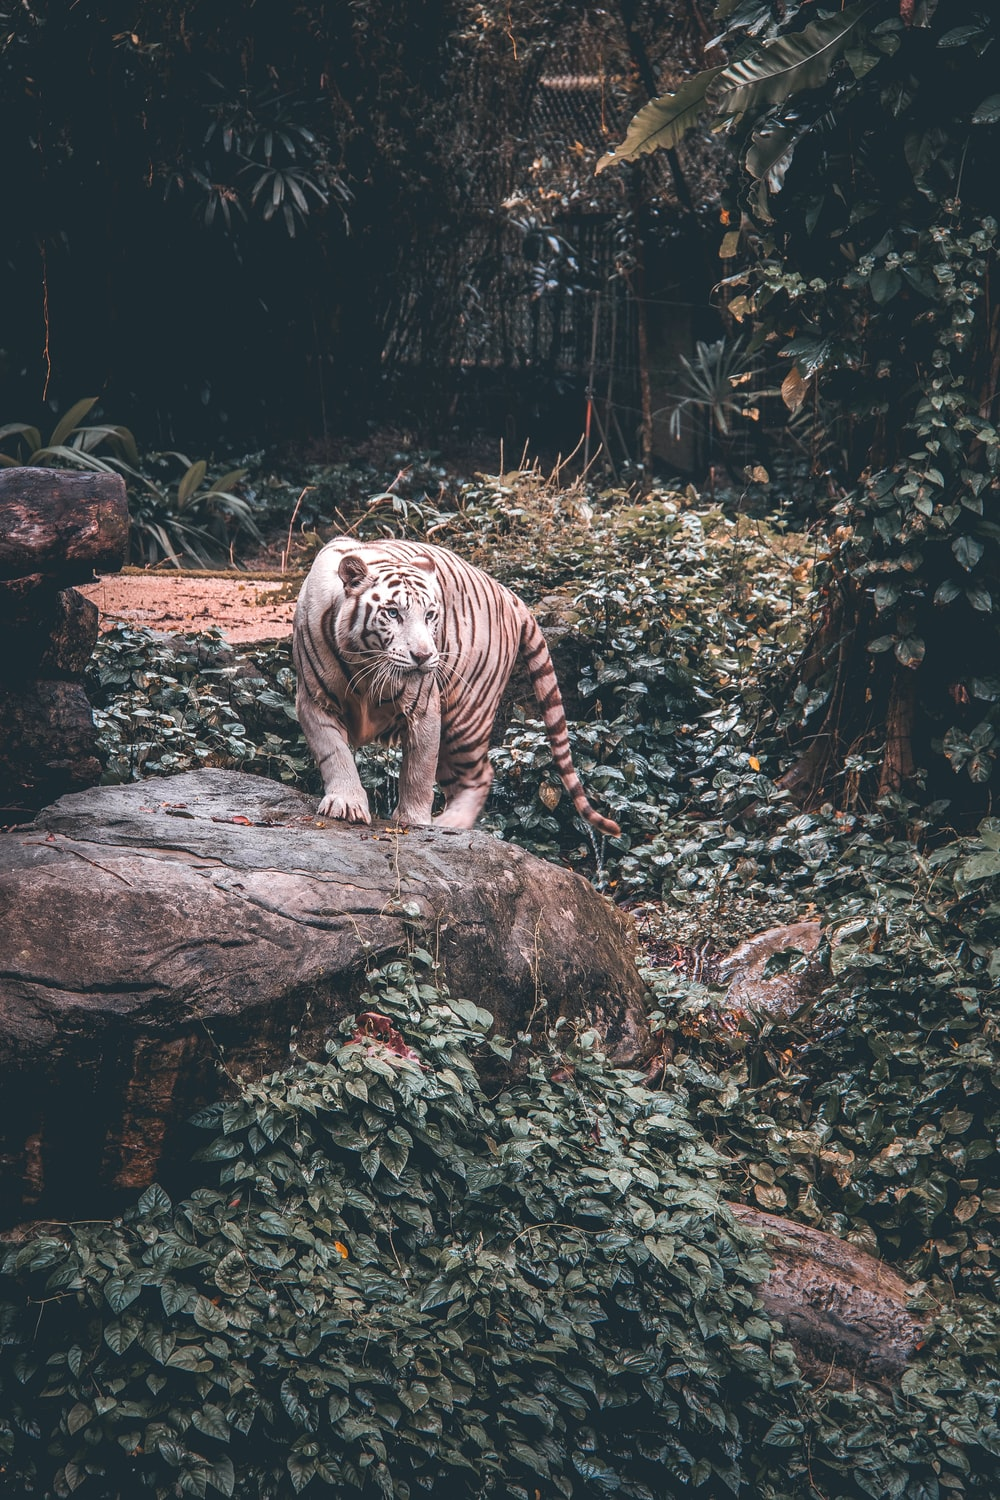 100 wild pictures download free images on unsplash